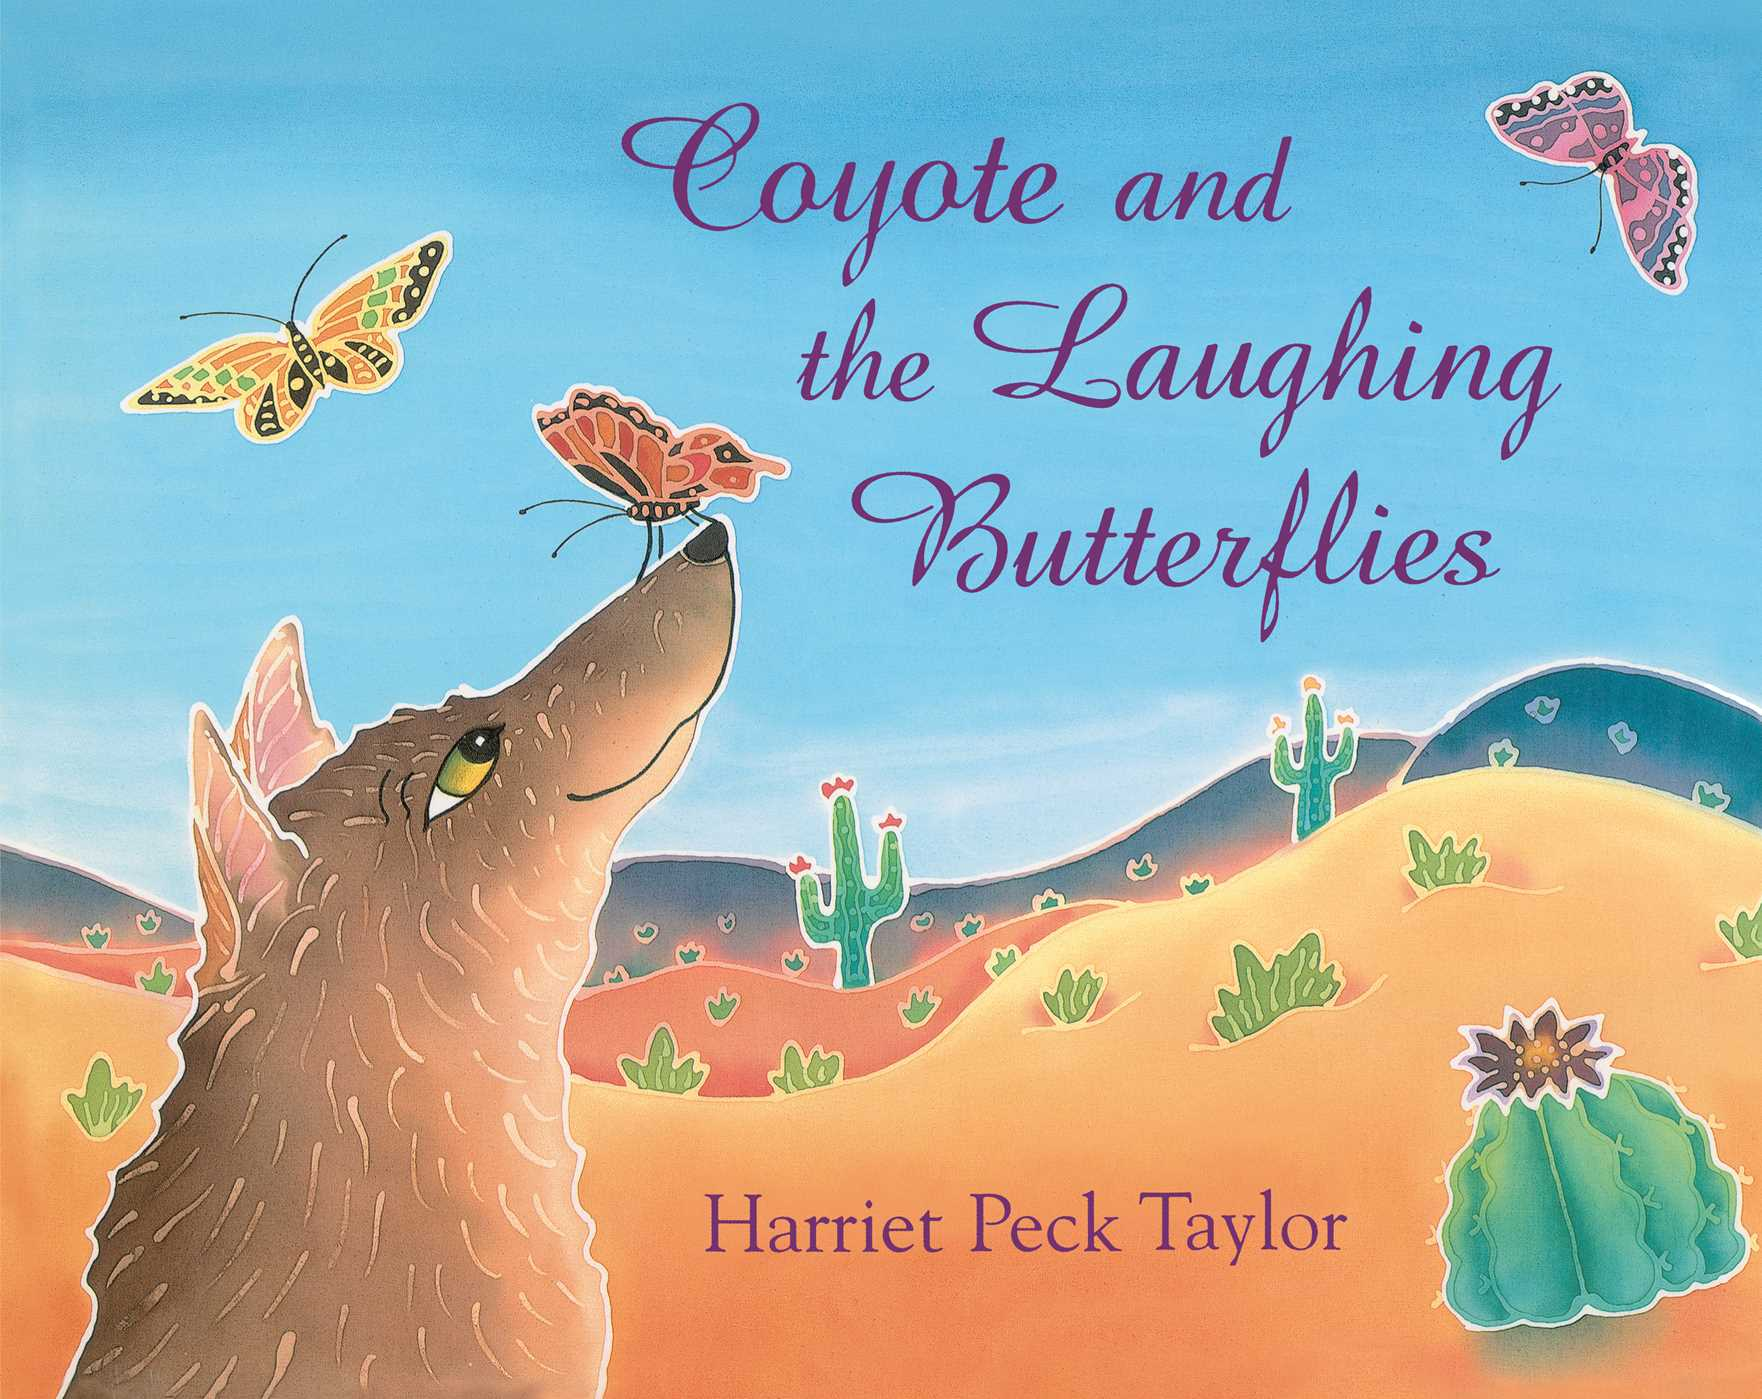 Coyote and the laughing butterflies 9780027888461 hr